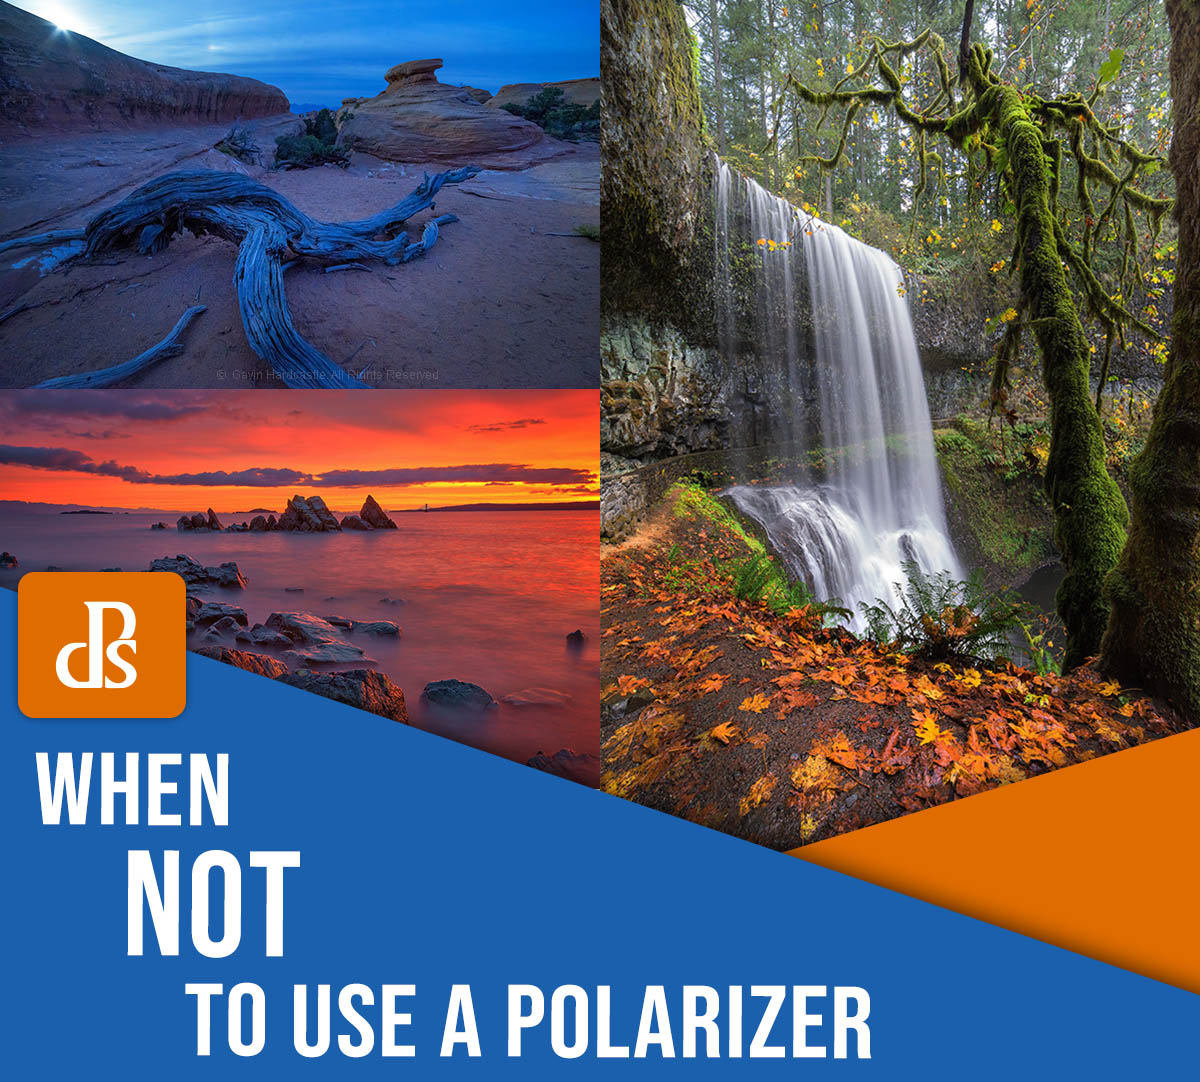 when not to use a polarizing filter